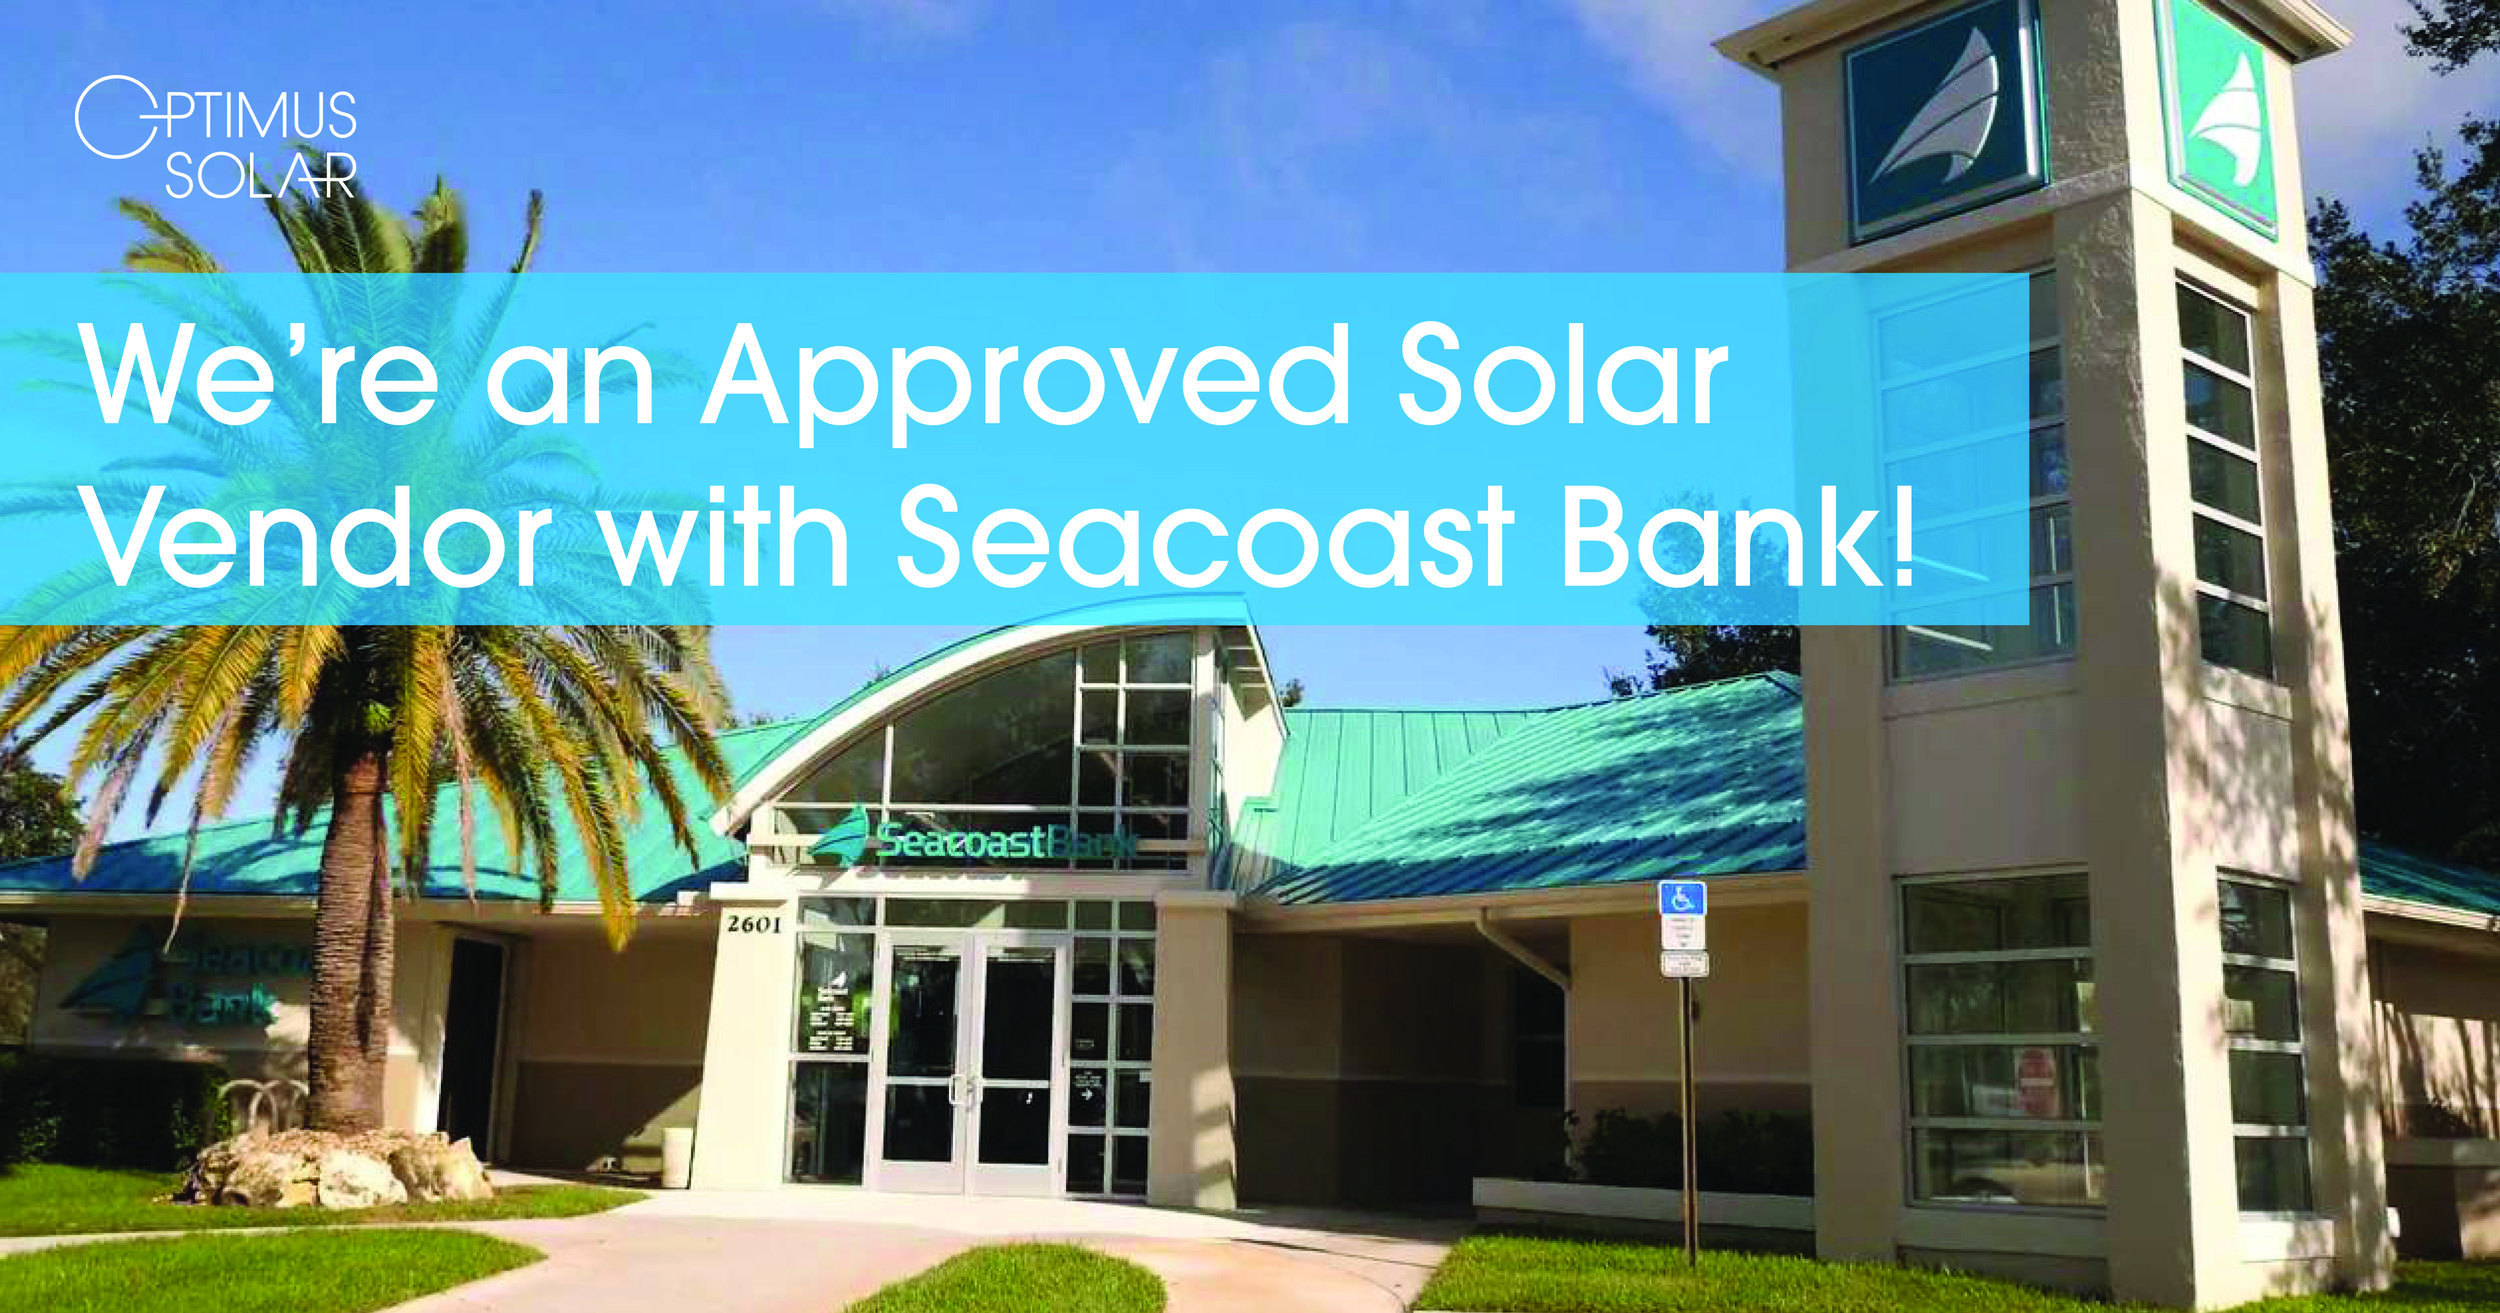 seacoast_bank_solar_vendor_partner_optimus_solar_mount_dora.jpg